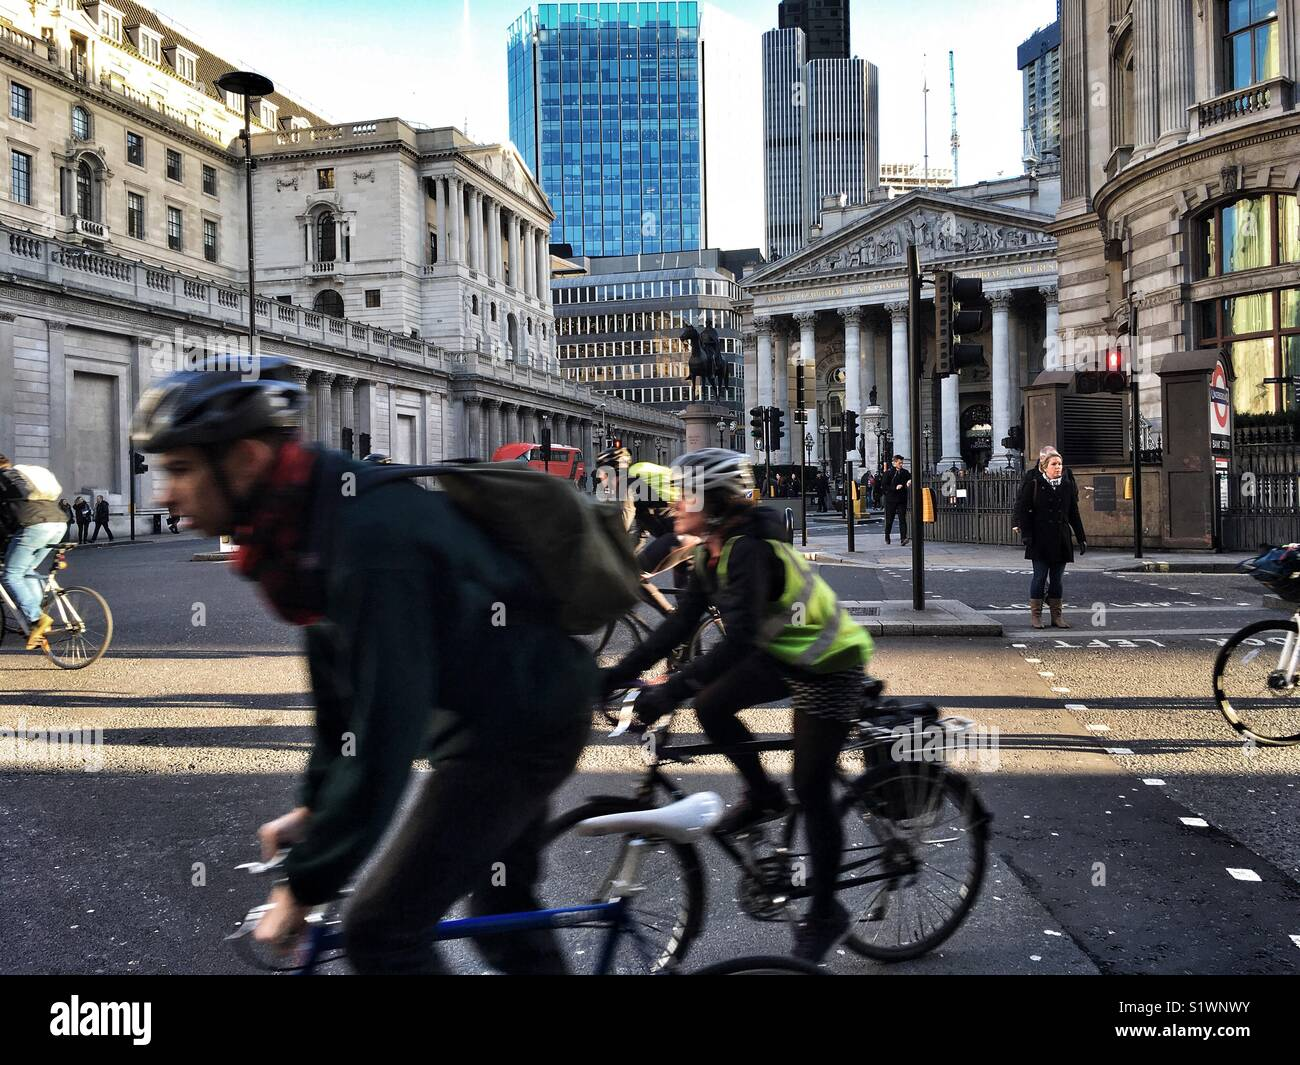 Cyclists at Cornhill and Bank Junction in the City of London, England on January 16 2018 - Stock Image